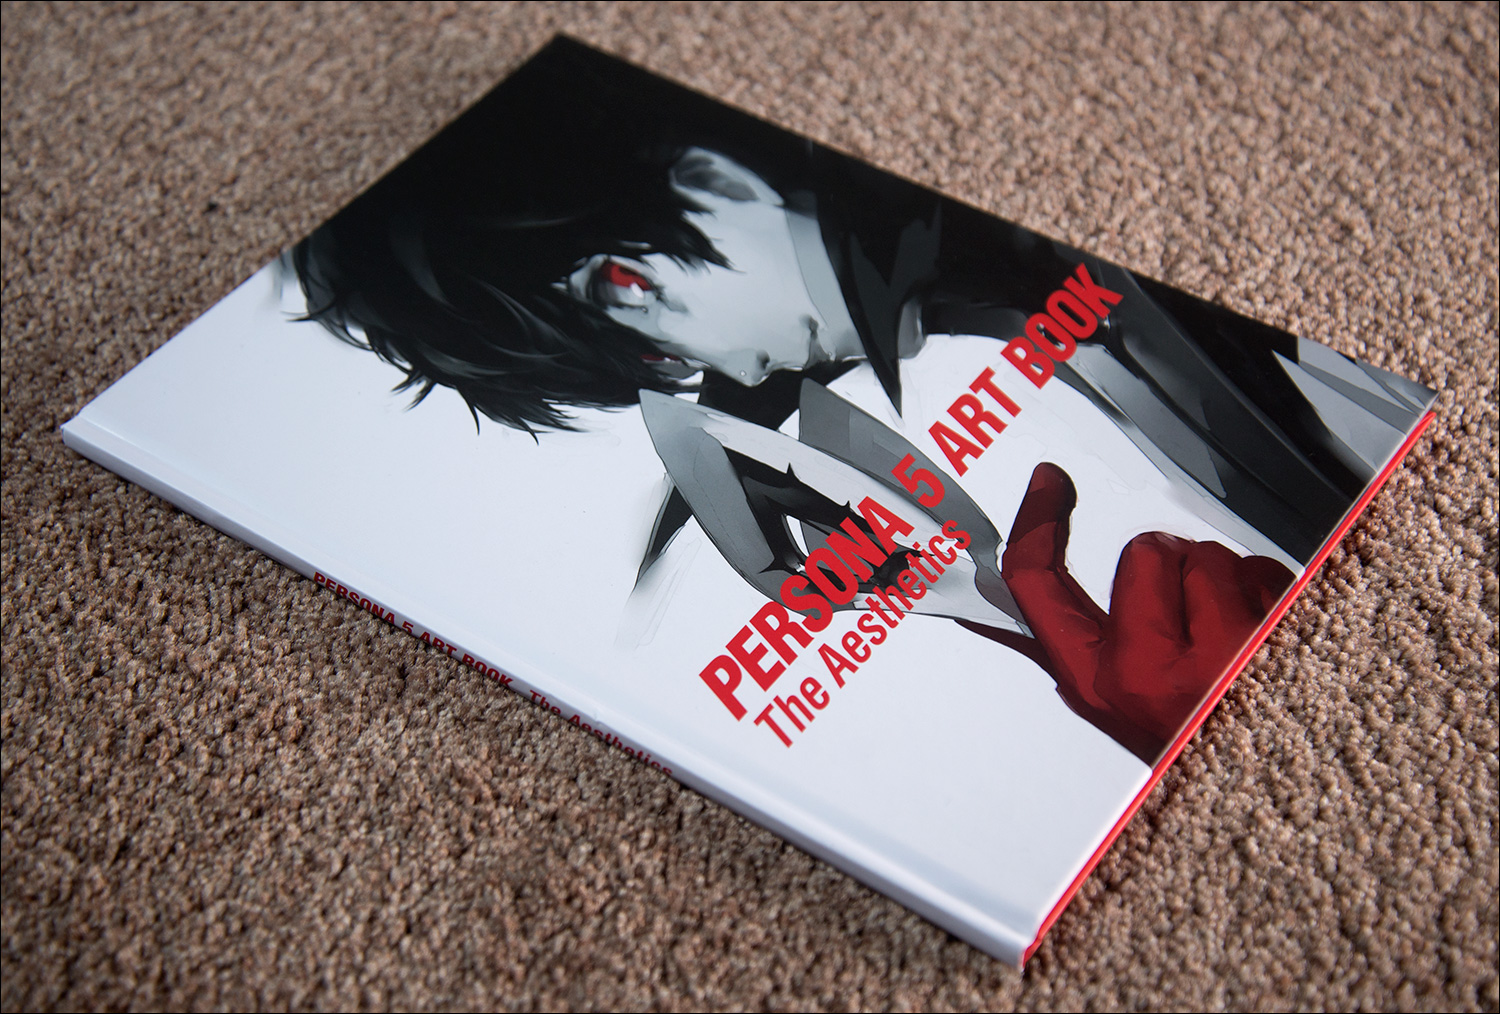 Persona 5 Take Your Heart Premium Edition Video Game Shelf The Aesthetics With Of Character Artworks Settings And Other Illustrations Theres Also Some Commentary By Designer Shigenori